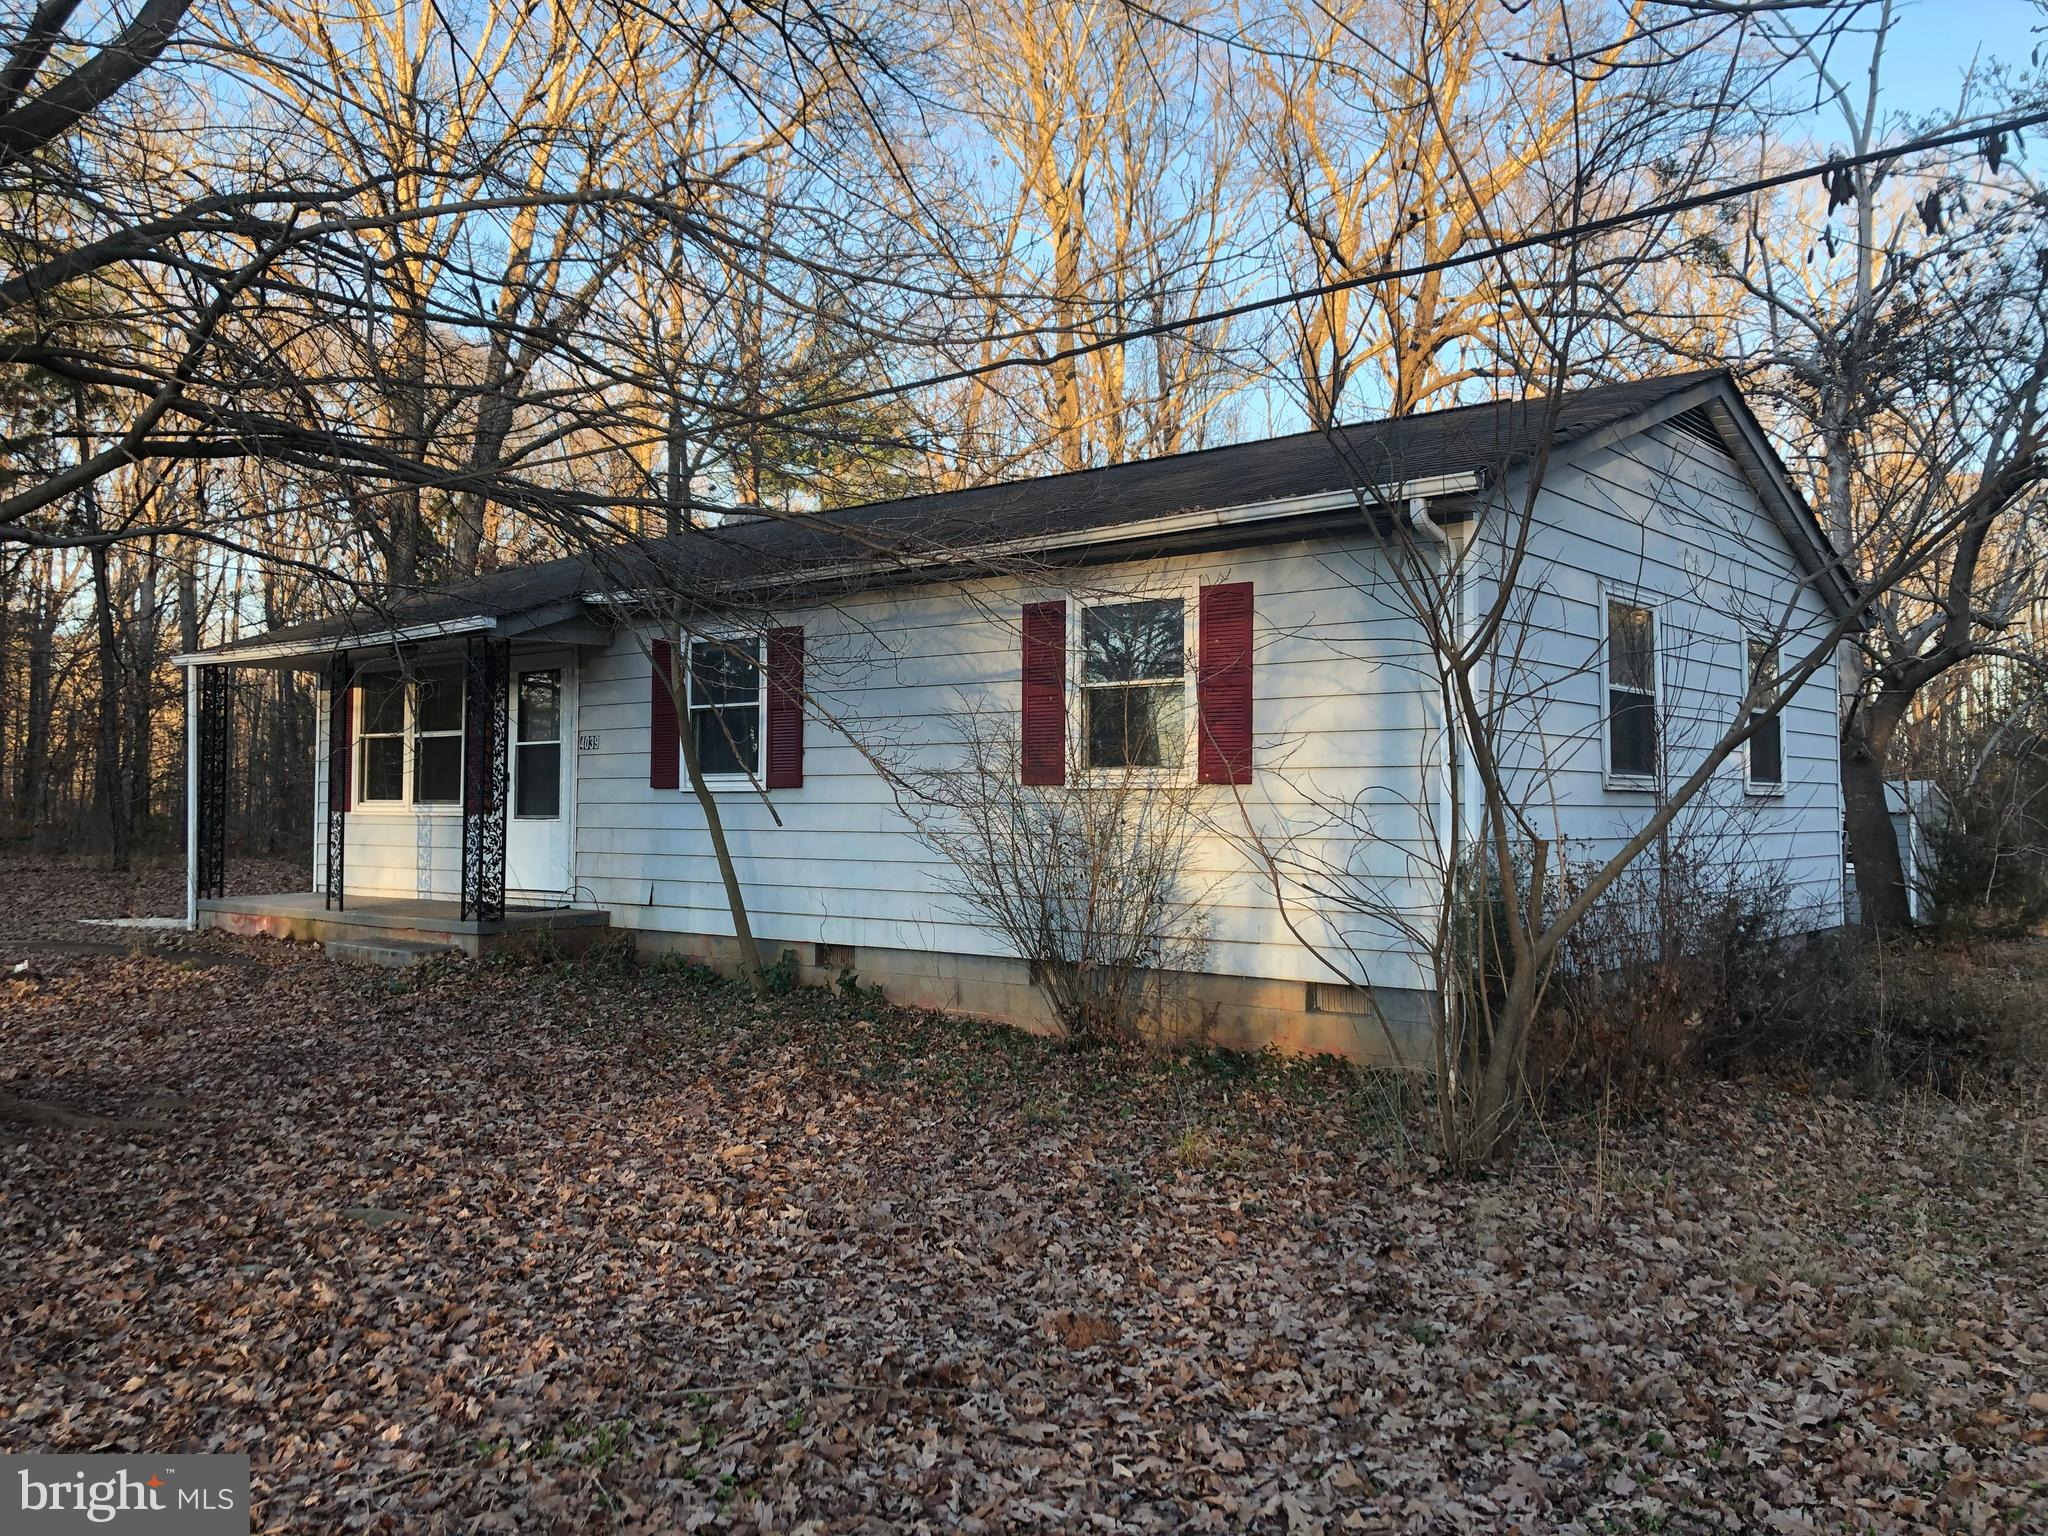 4039 SHANNON HILL ROAD, COLUMBIA, VA 23038